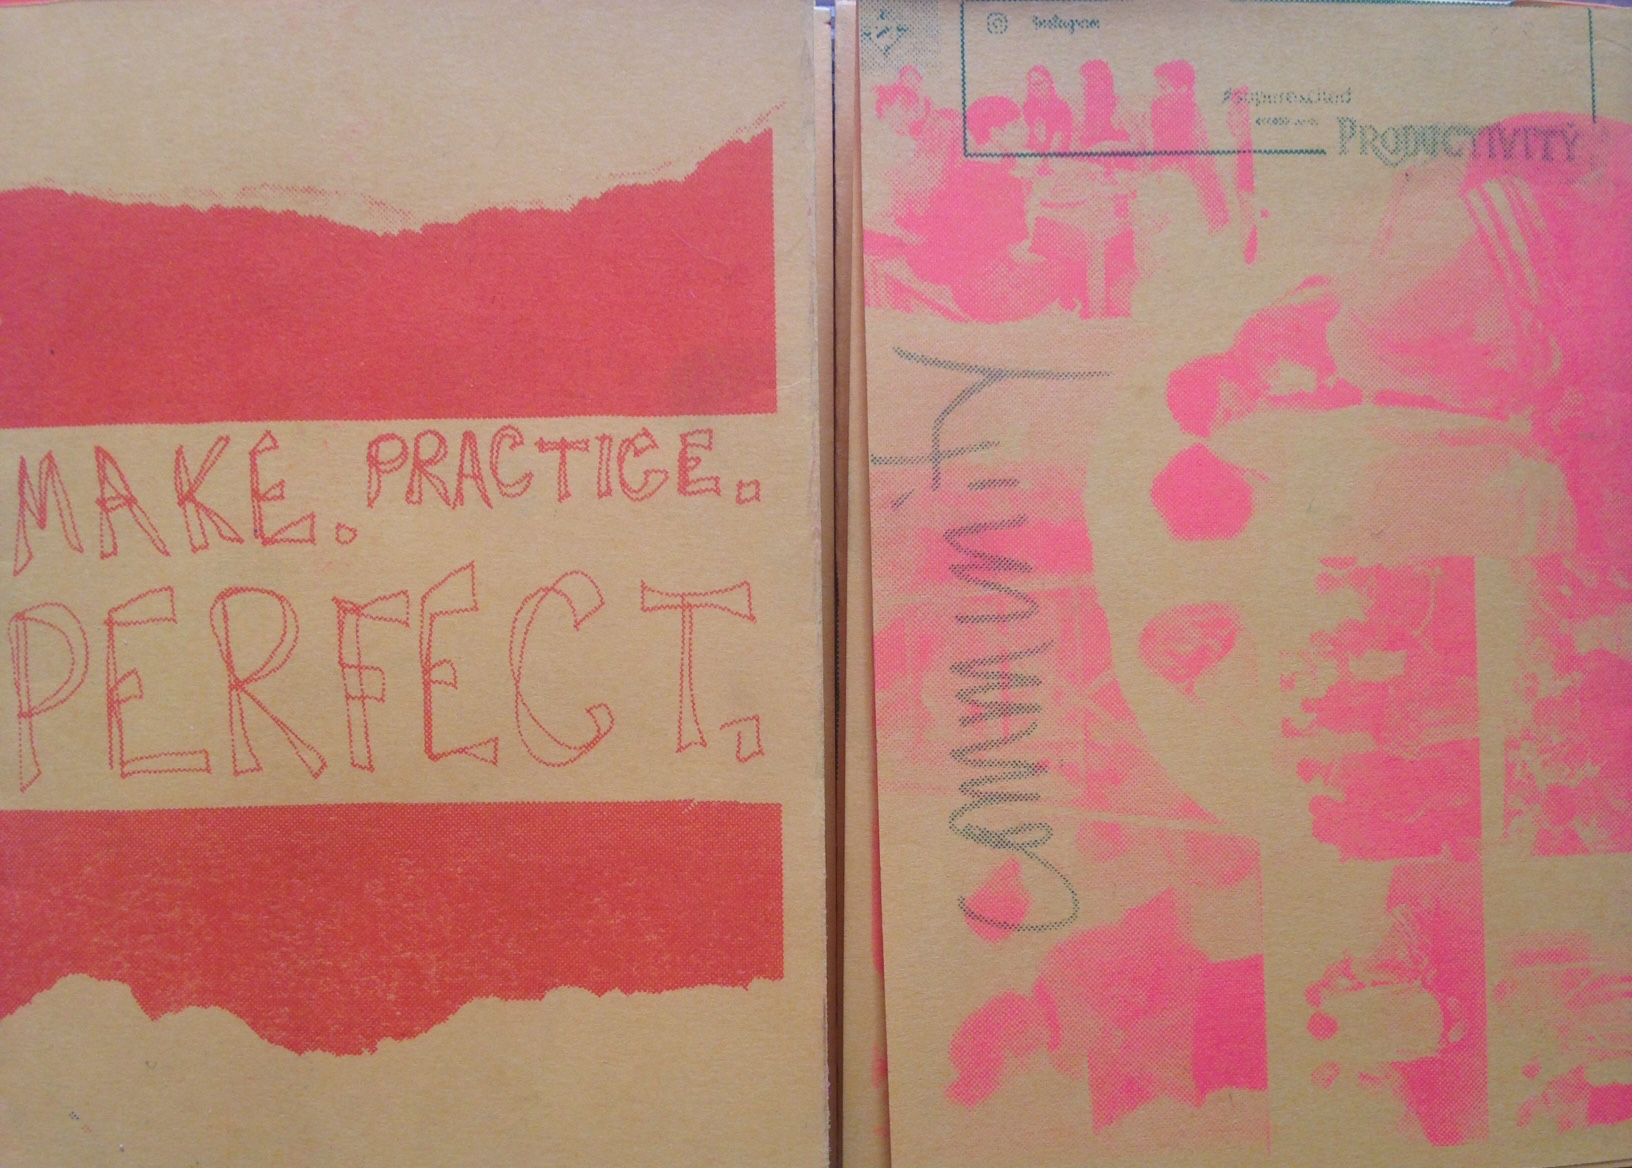 Make.Practice.Perfect. zine